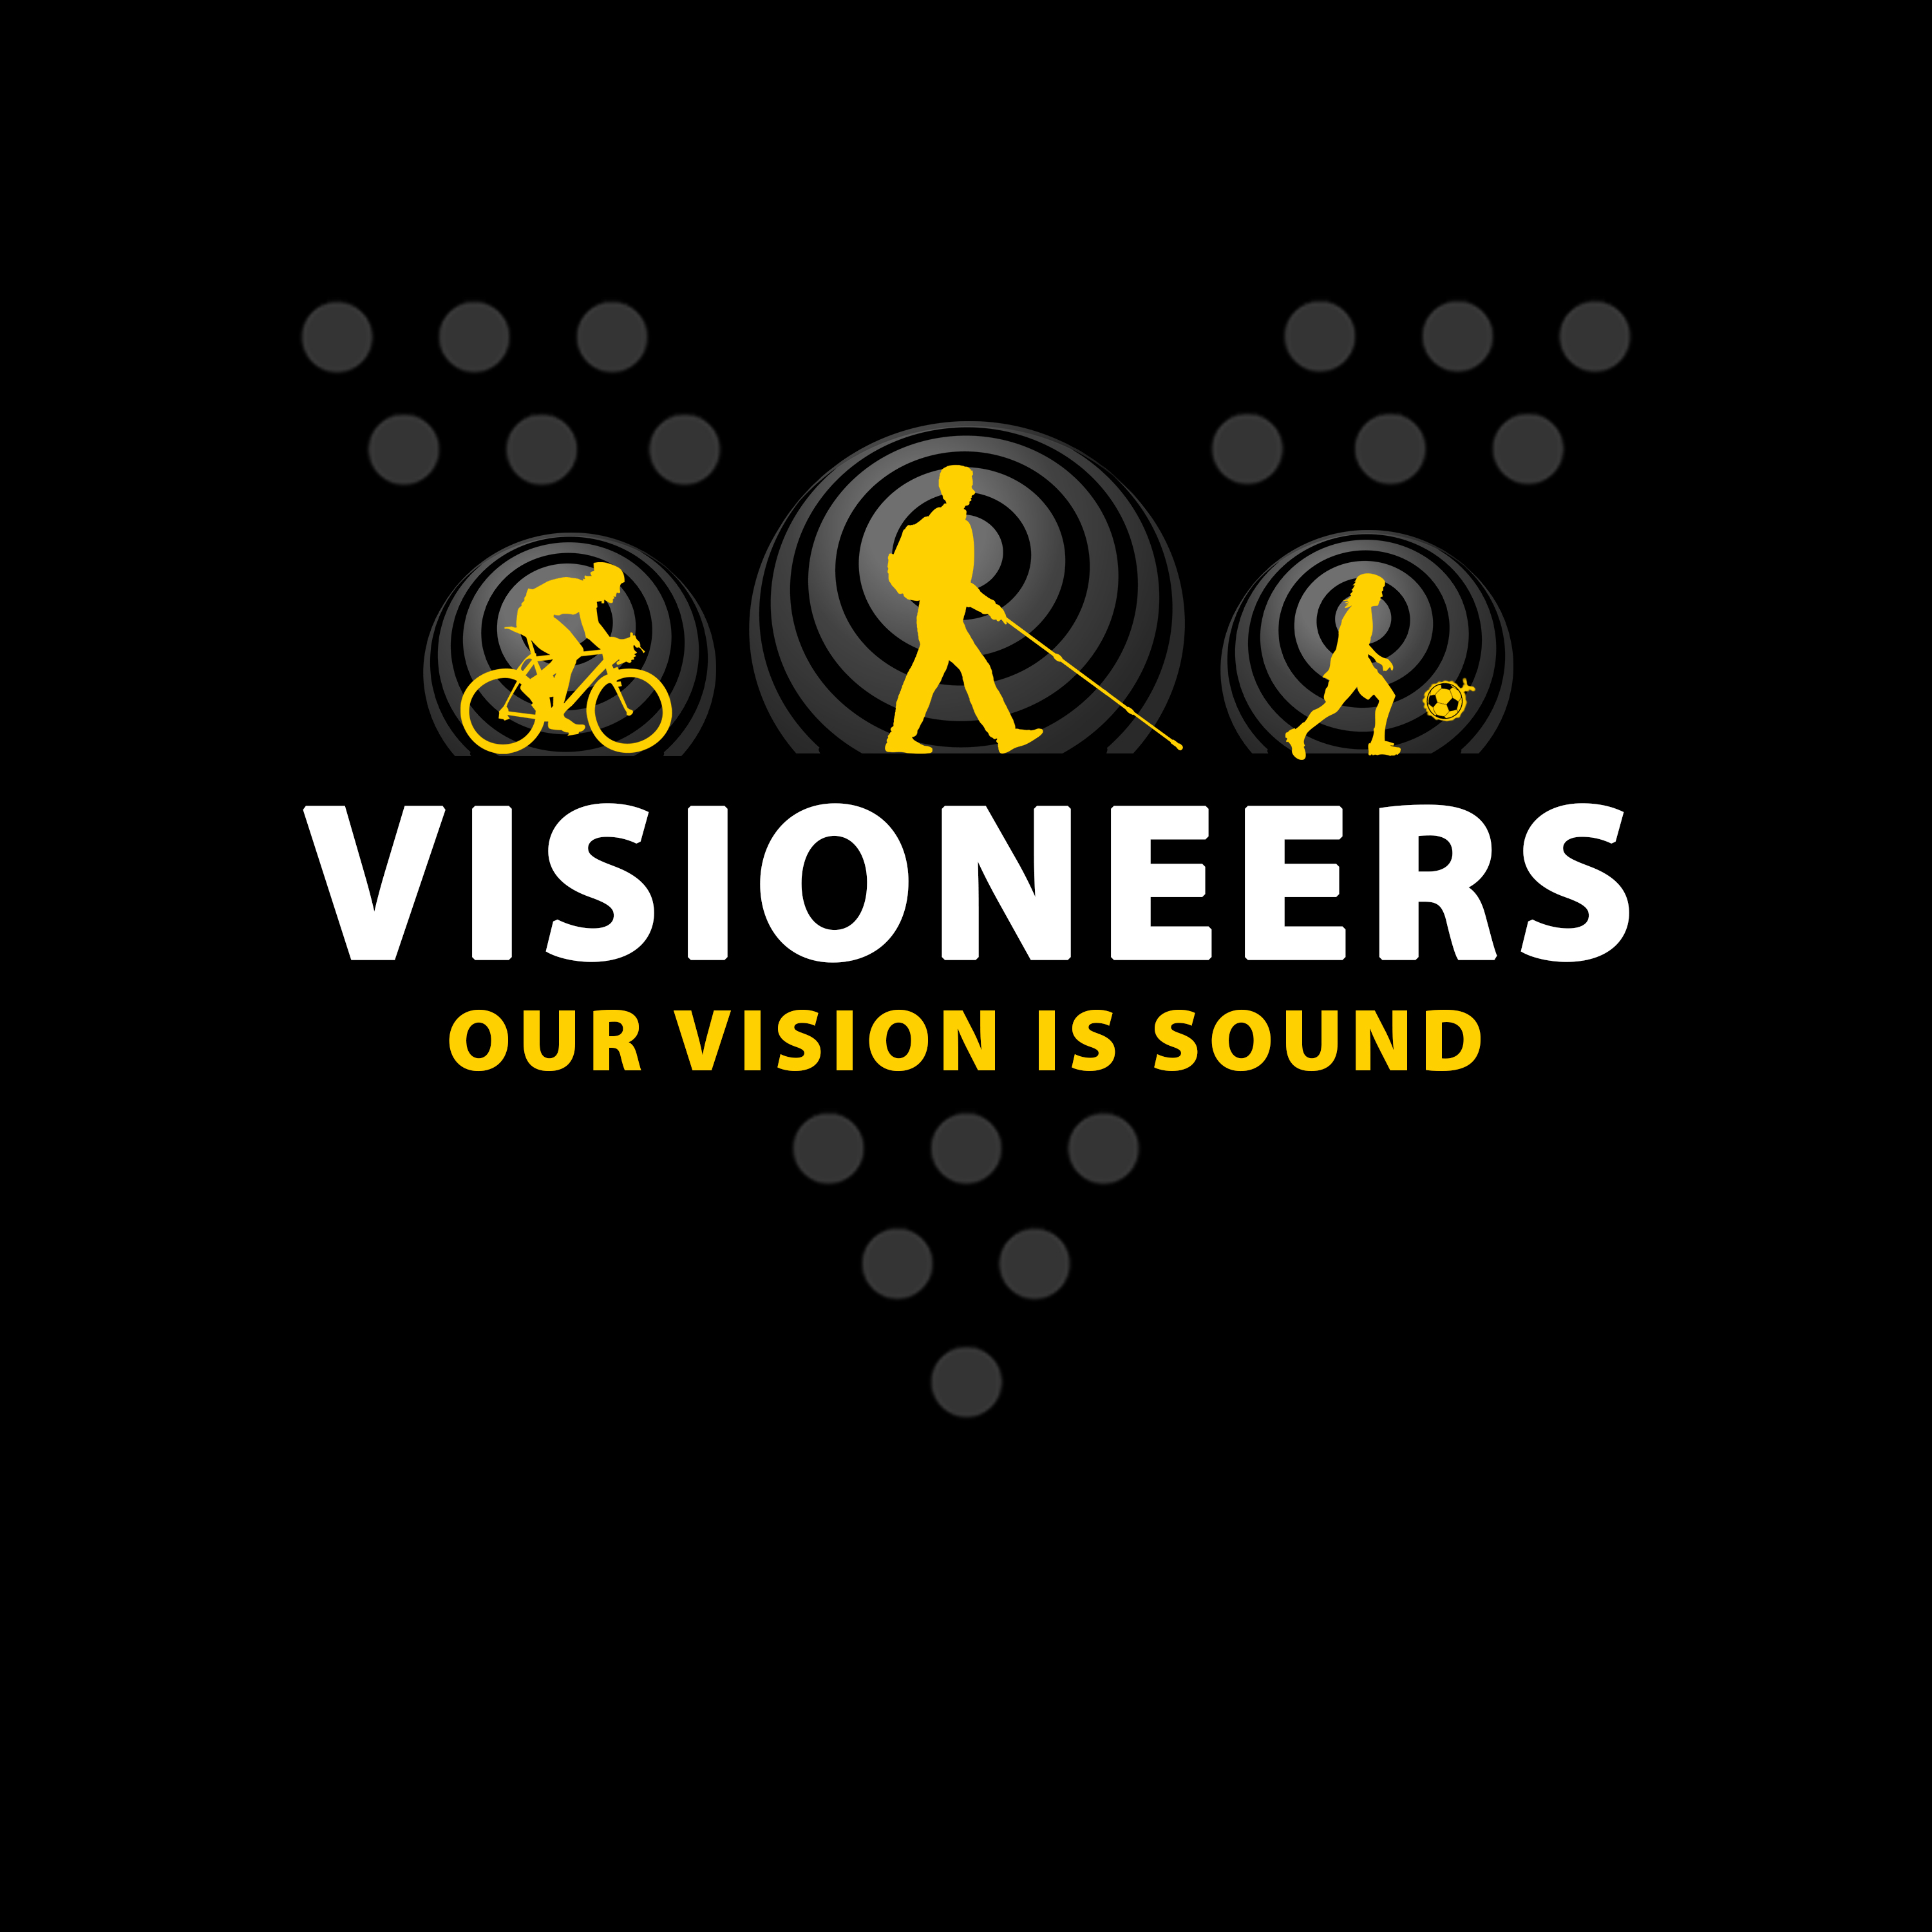 Visioneers 3. Same as previous layout with yellow Daniel silhouette, plain Visioneers white text and grey V dots.